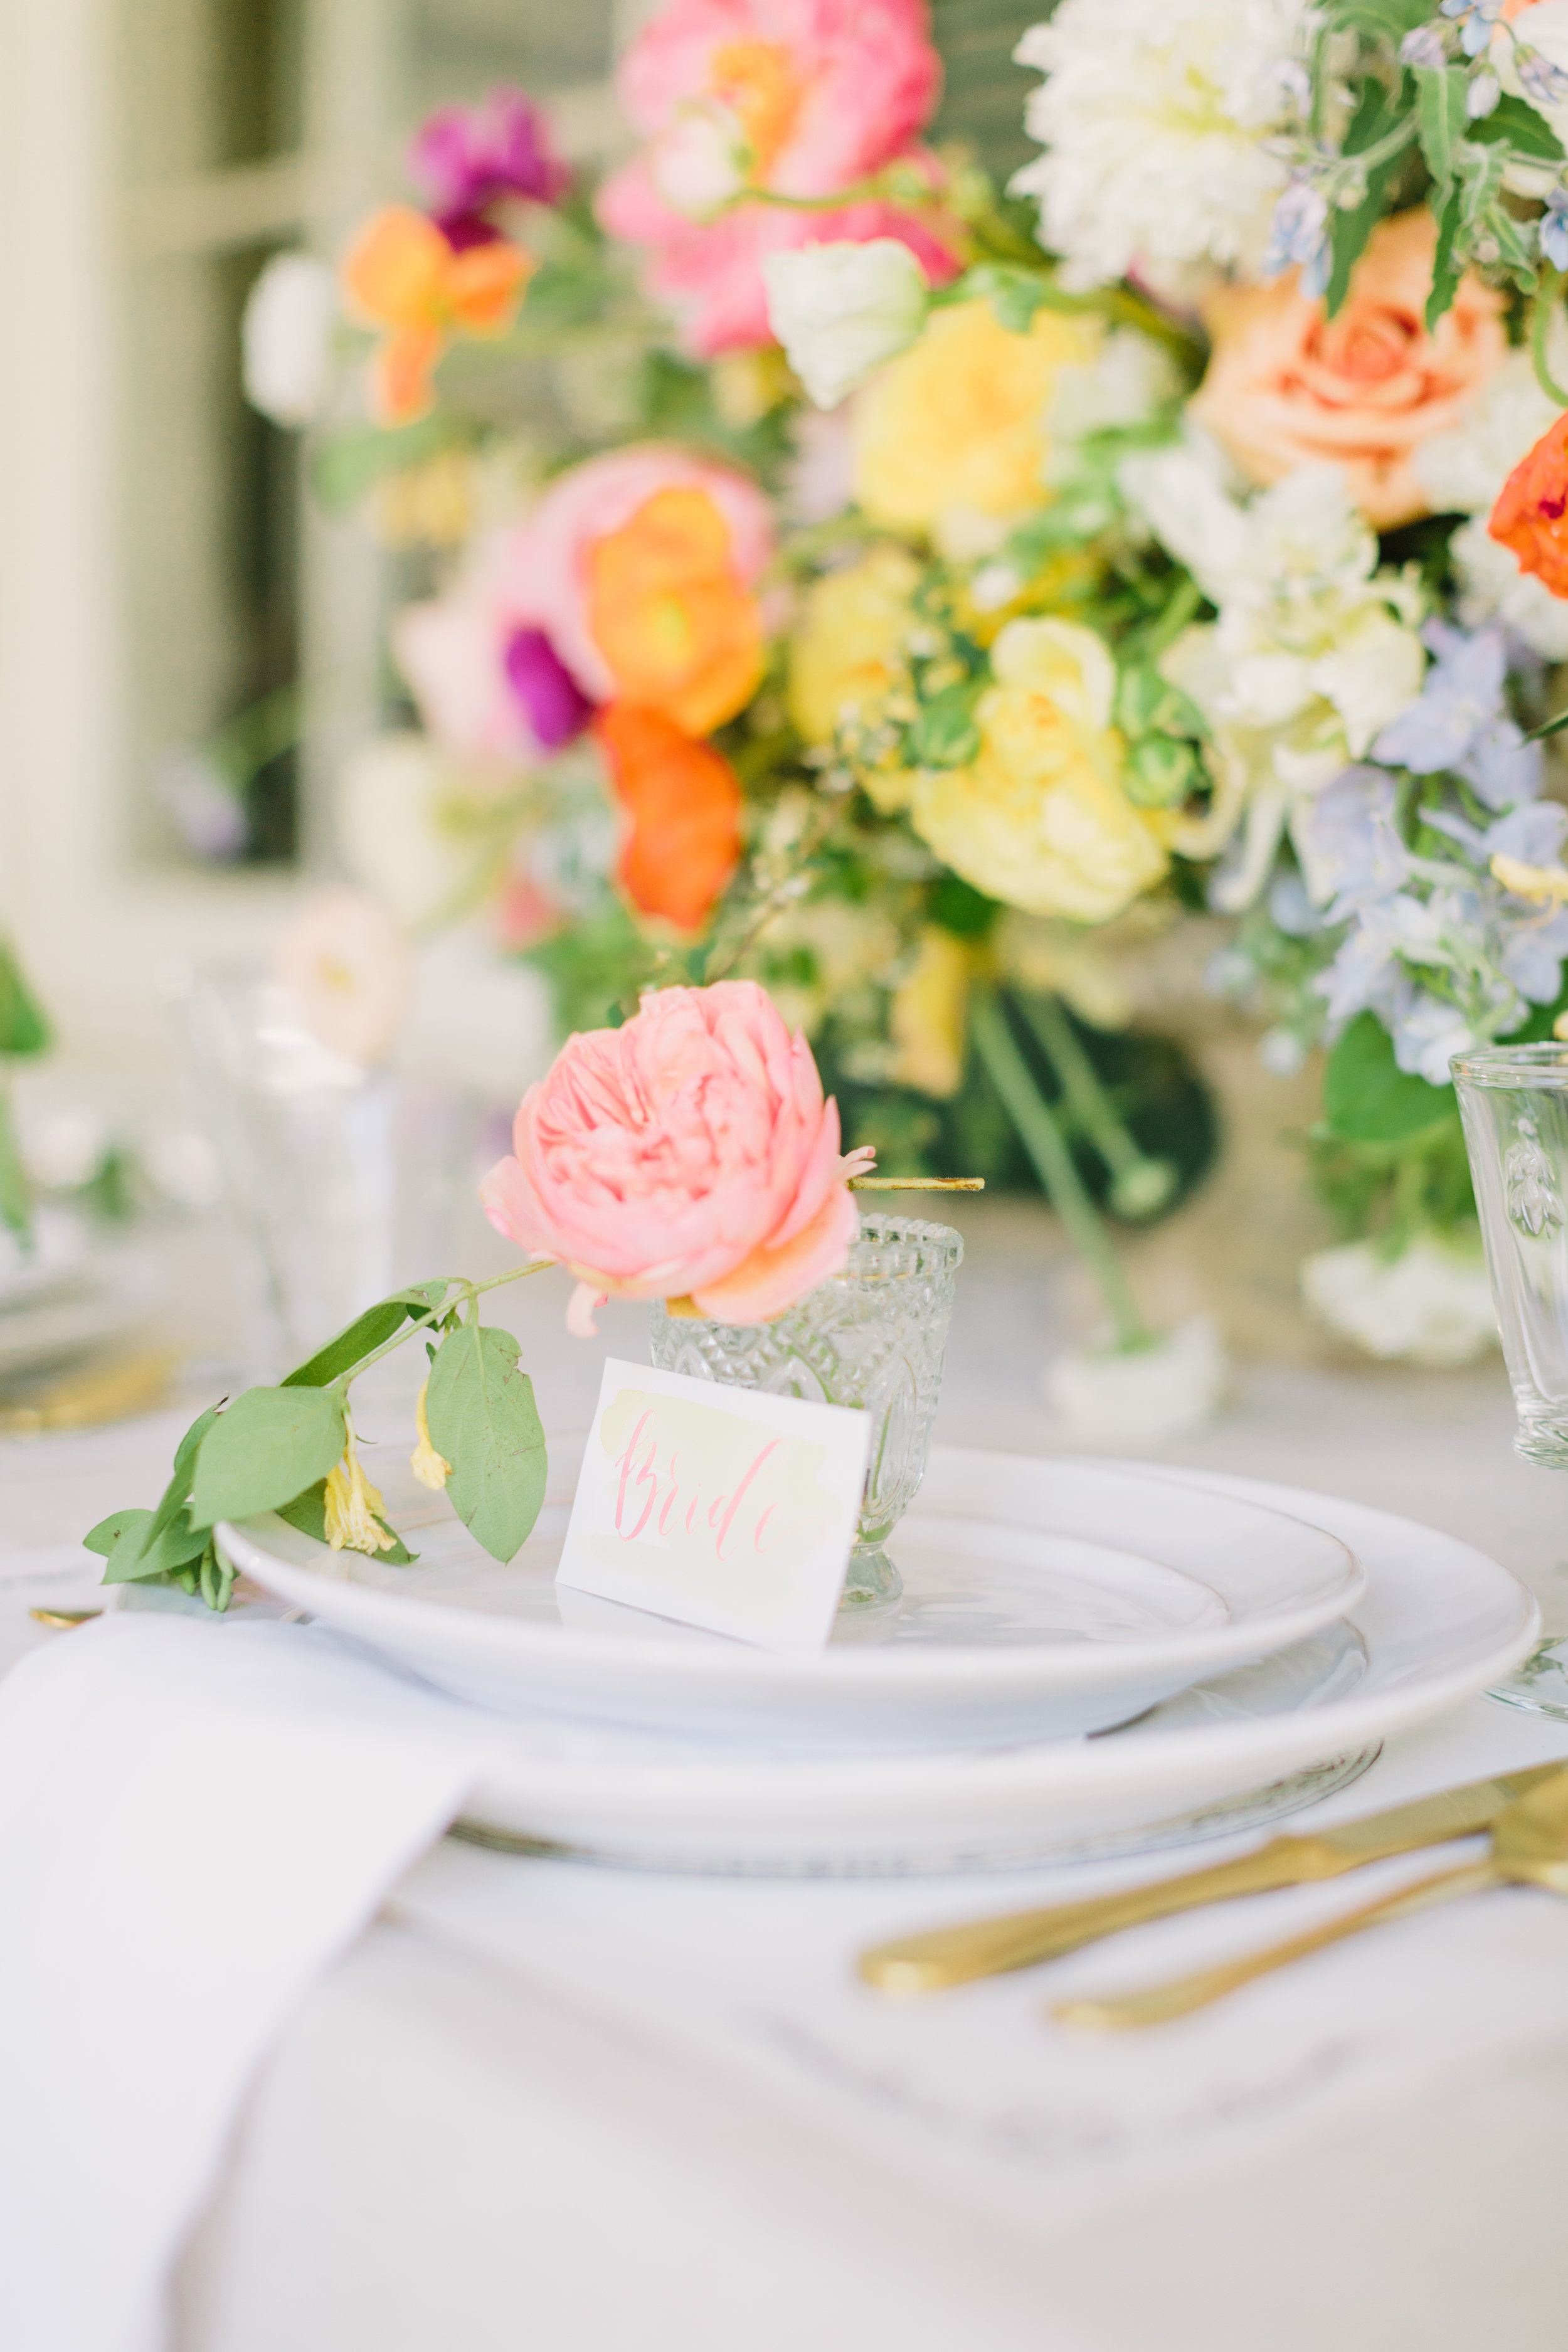 jessica-zimmerman-events-summer-wedding-colorful-table-dinnerware.JPG